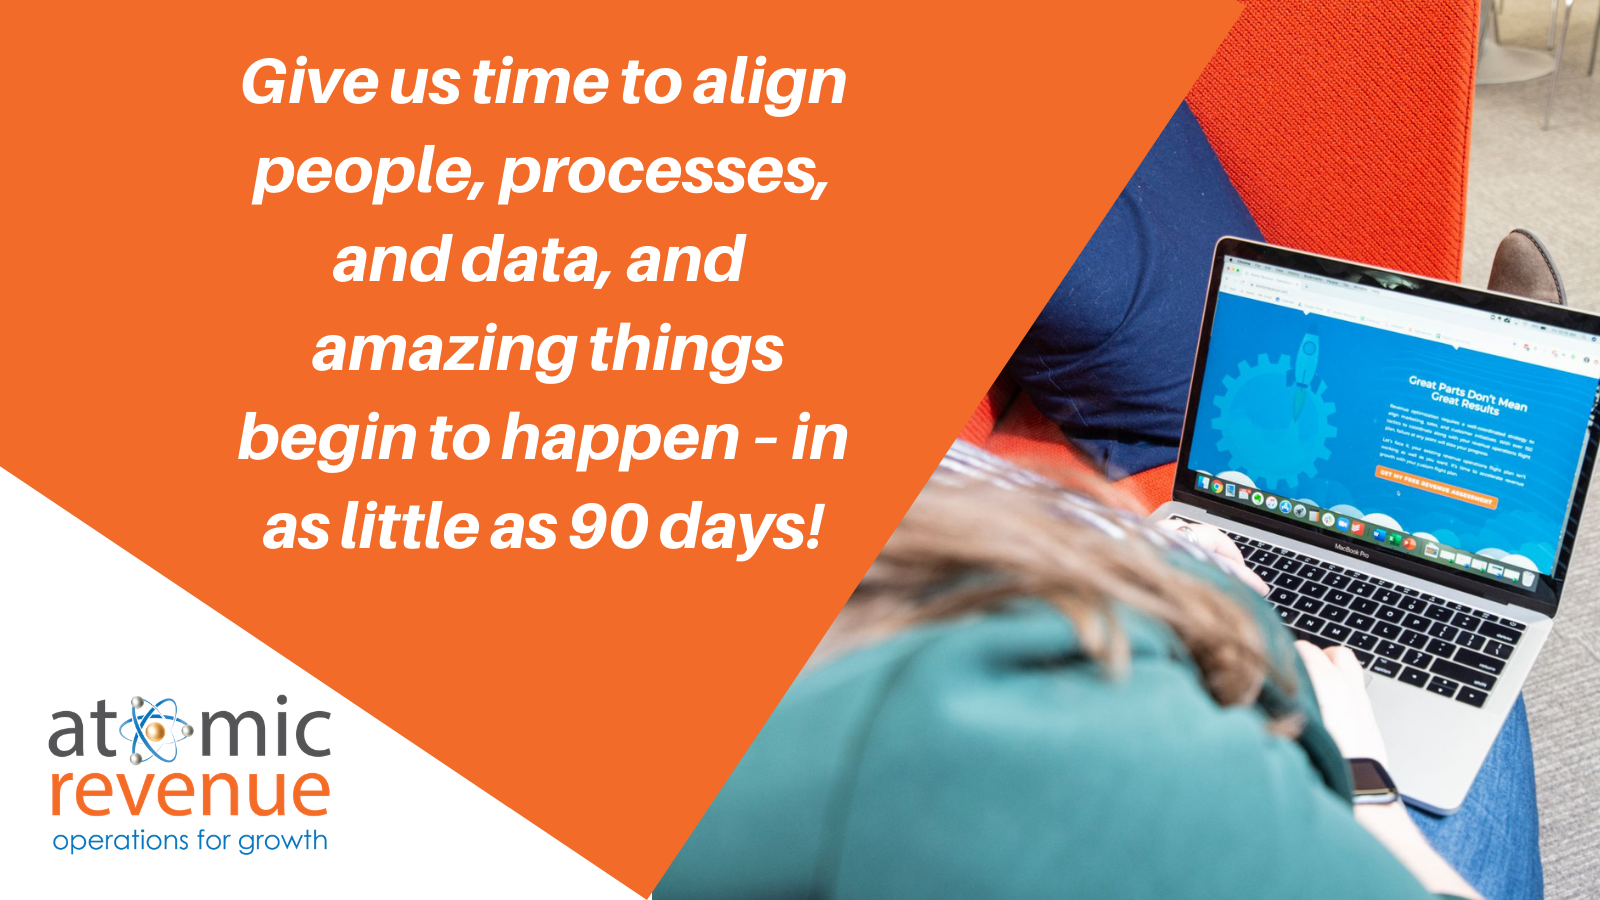 align people process data atomic revenue 90 days